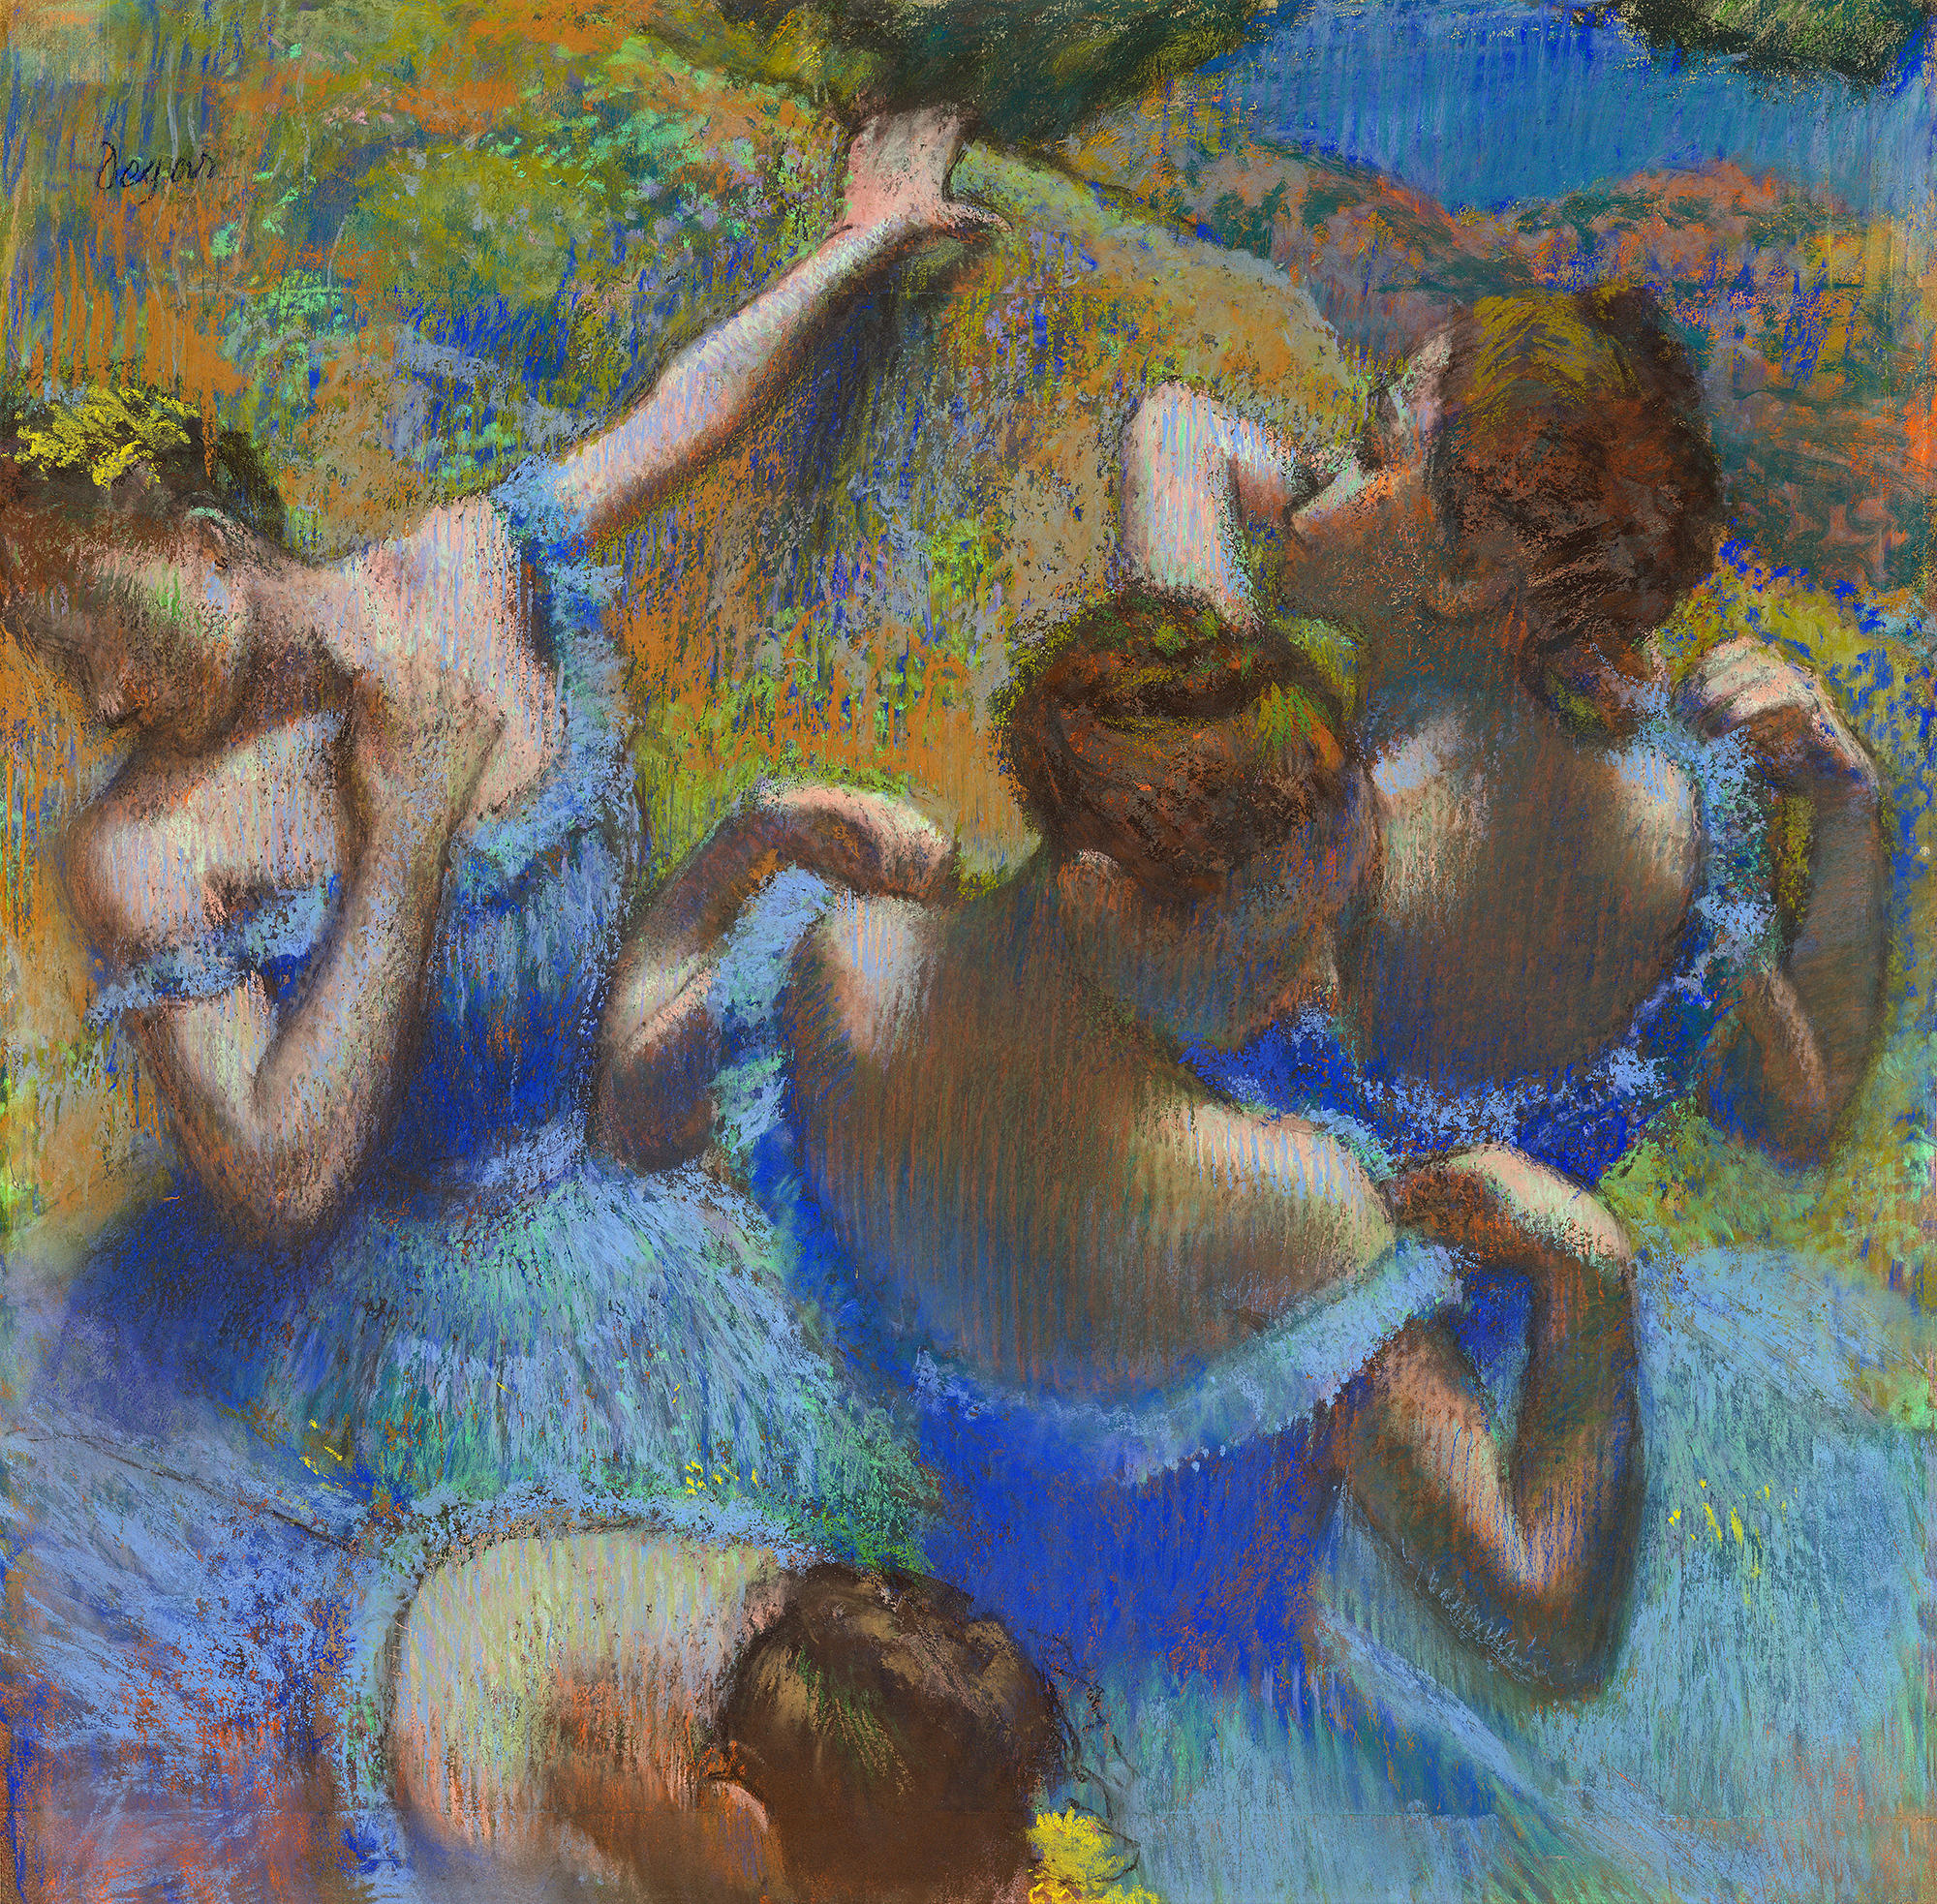 Degas: Dancers in blue